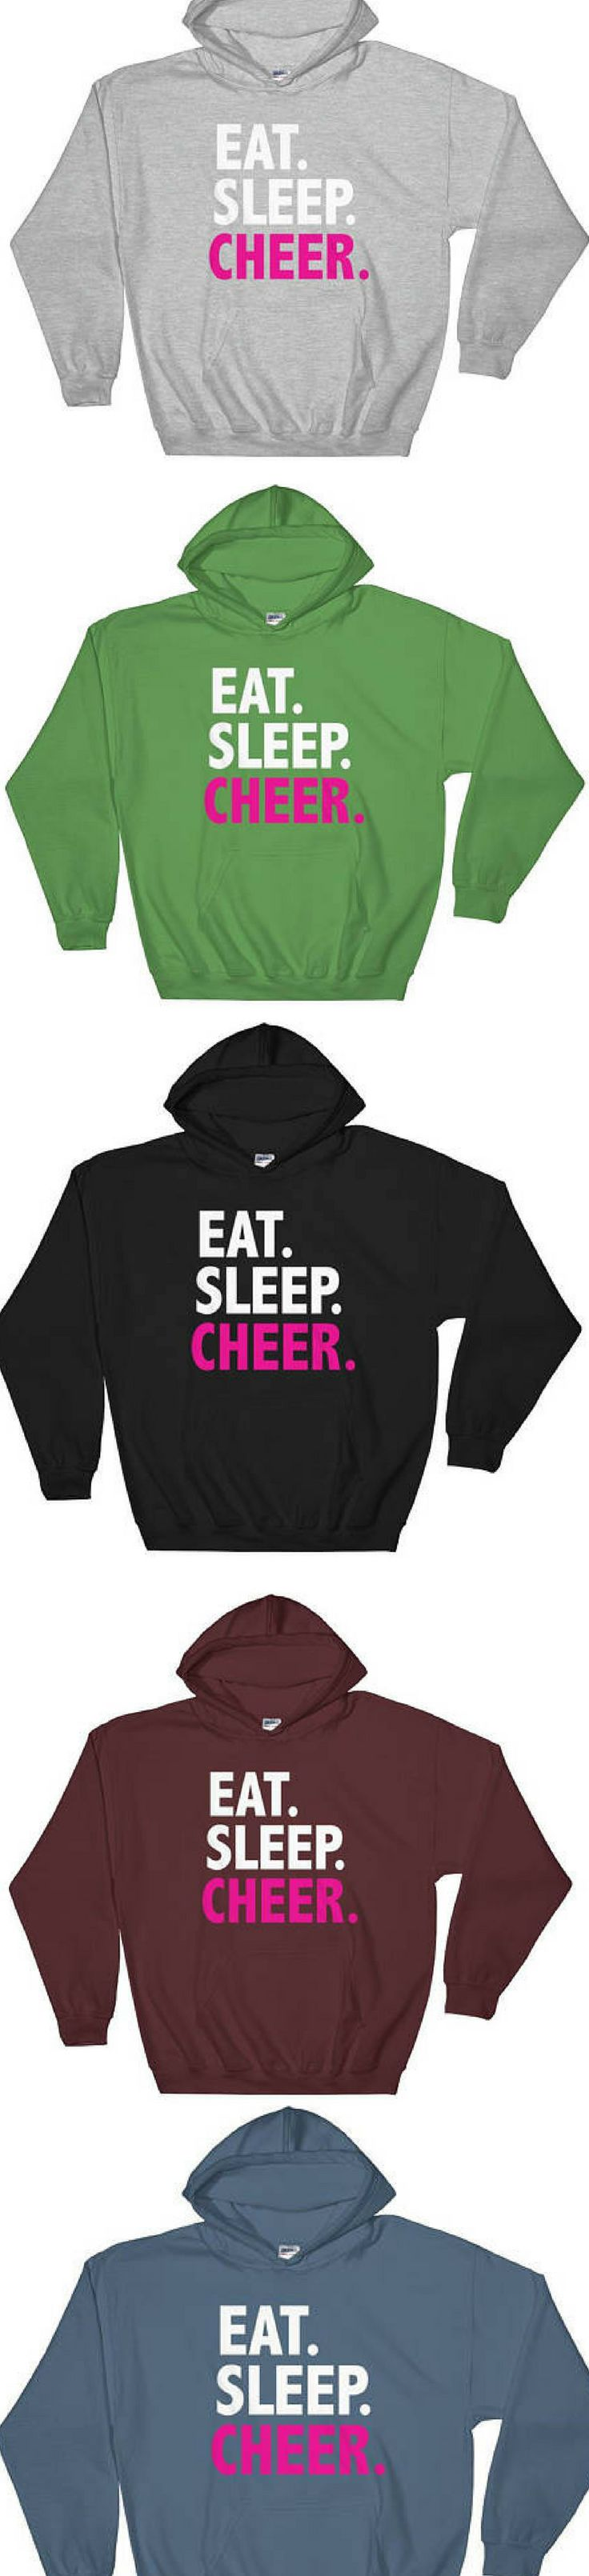 $36.  Eat Sleep Cheer, Cheer Hoodie, Cheer Shirt, Cheerleader, Hooded Sweatshirt cheerleading sweatshirt #cheerleading #ad